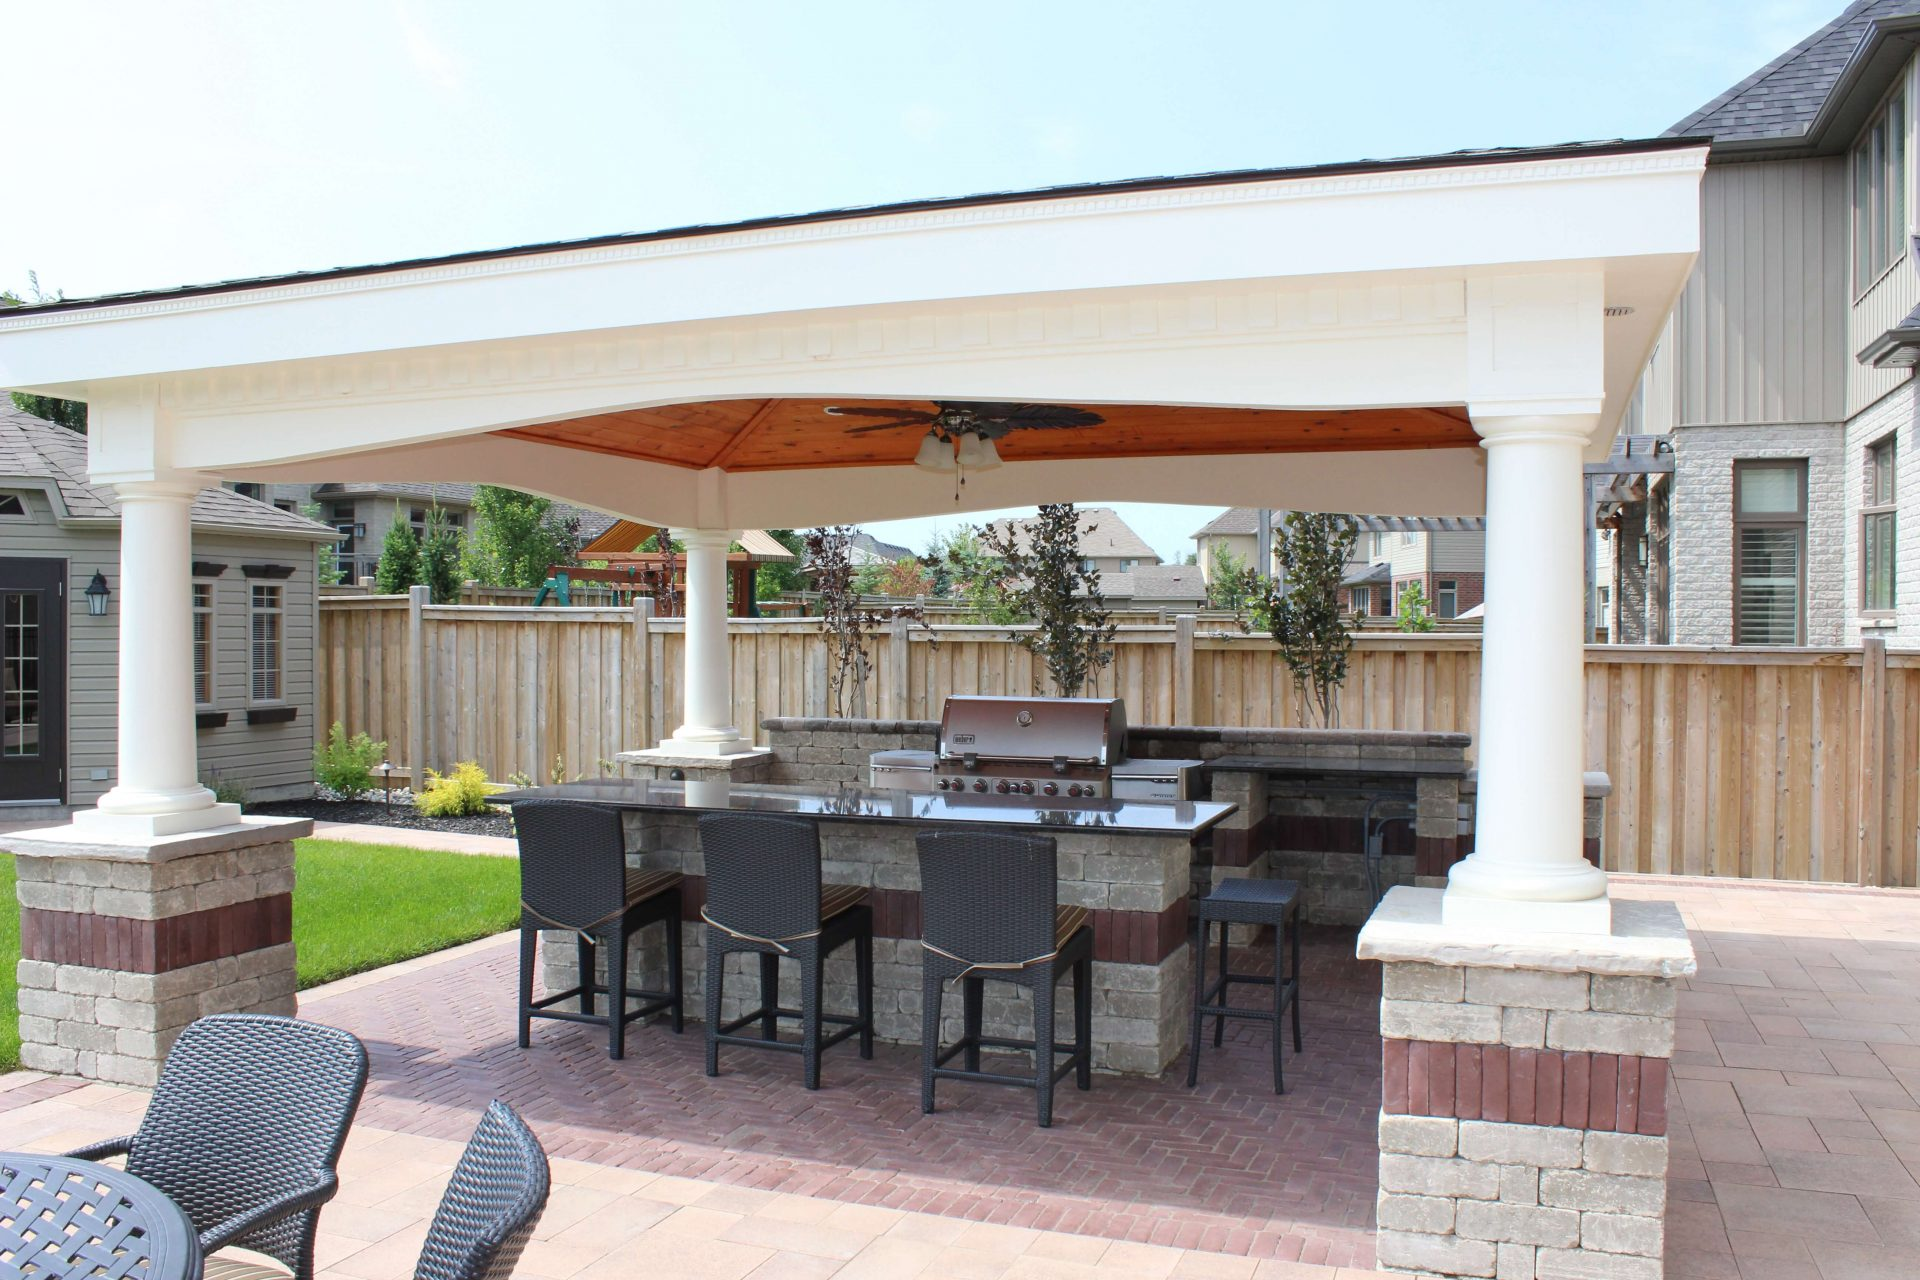 Covered open concept backyard entertainment area with barbeque